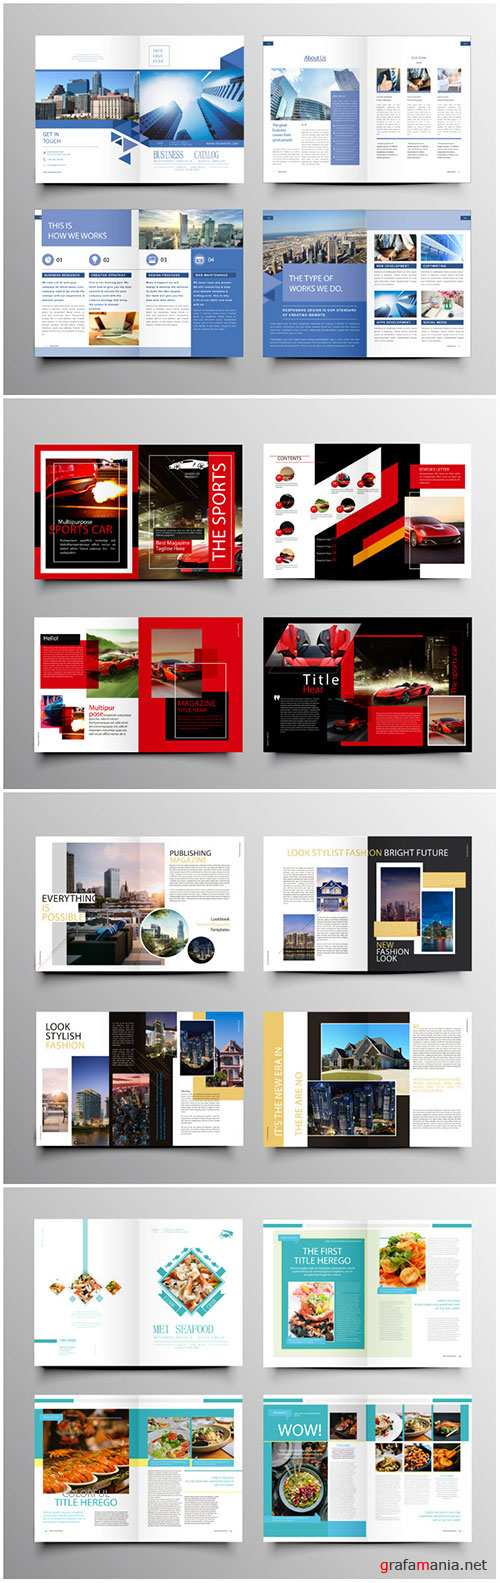 Brochure template vector layout design, corporate business annual report, magazine, flyer mockup # 228